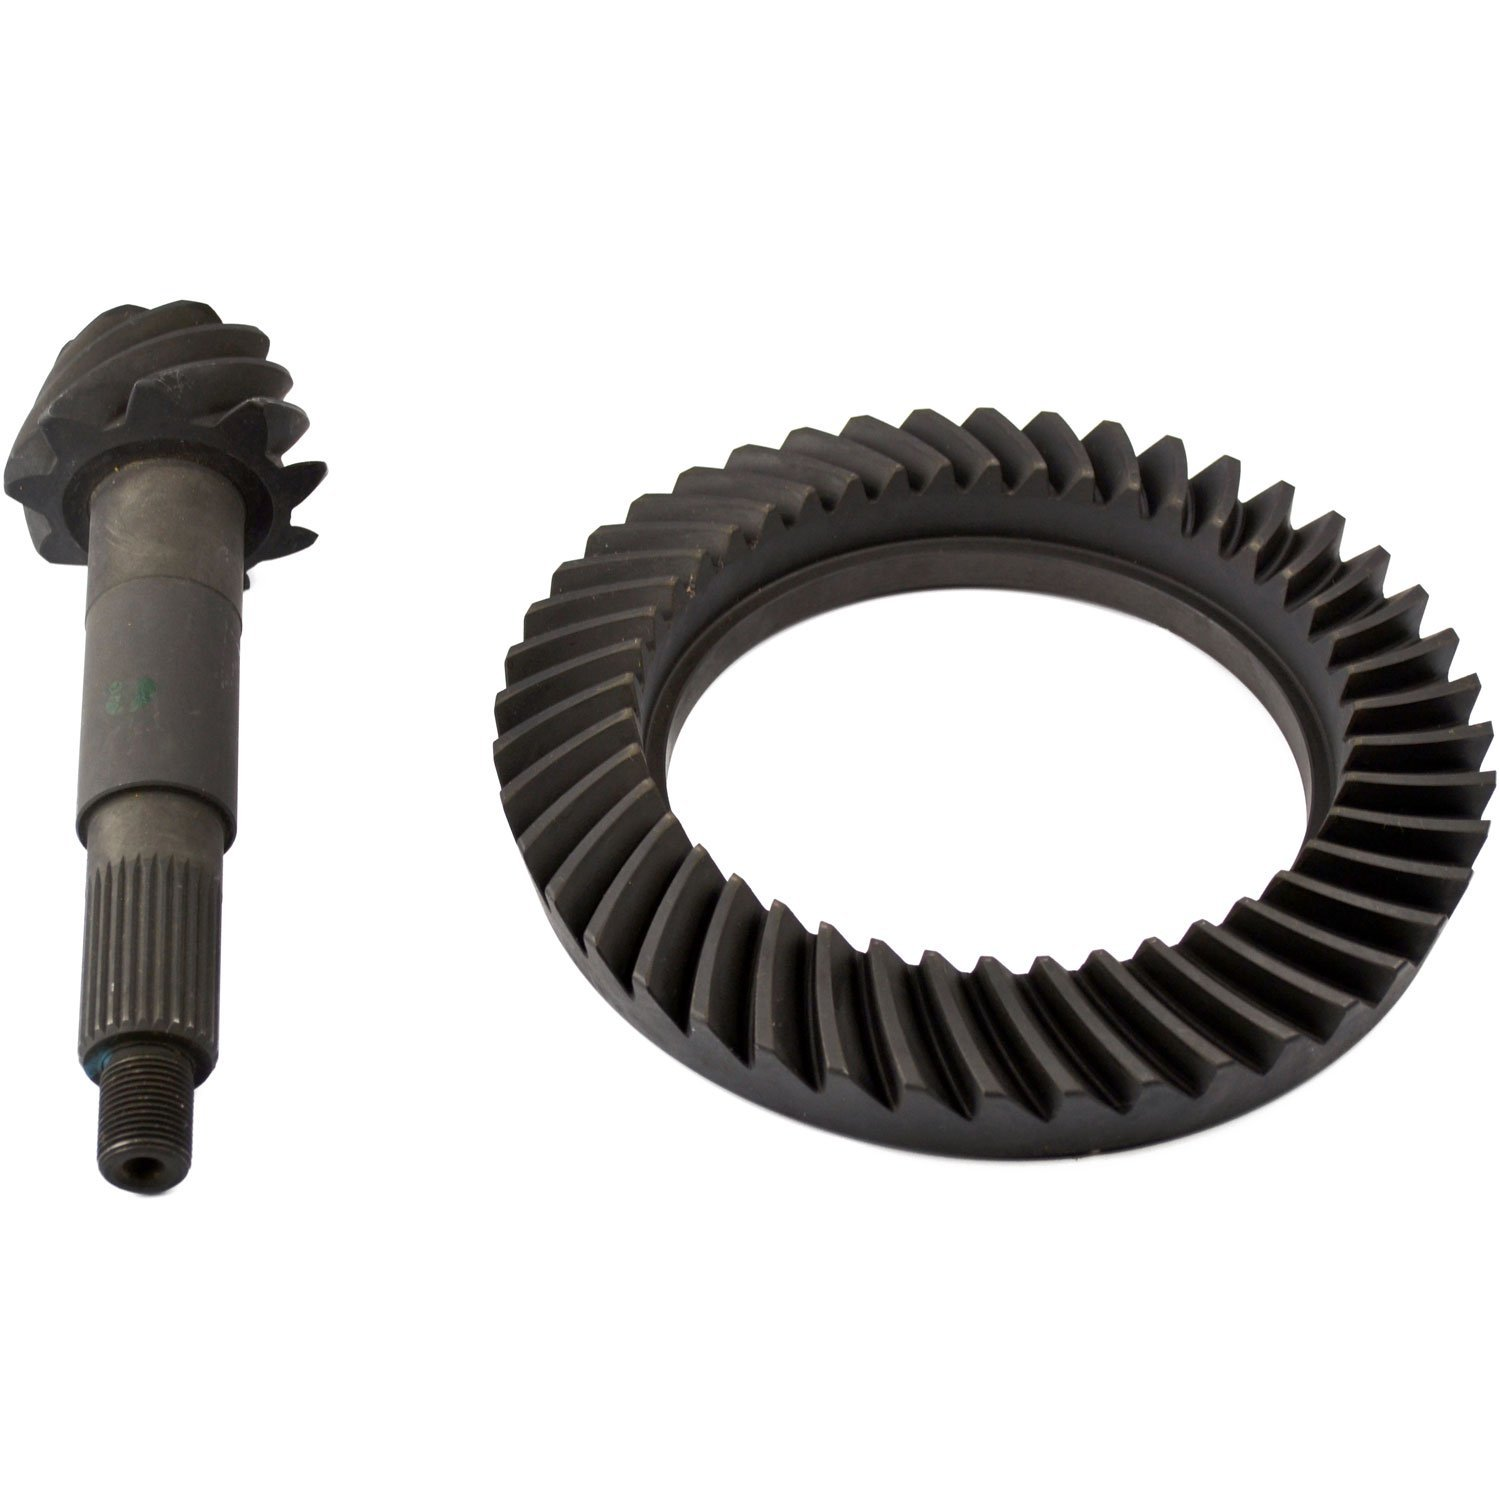 SVL 2019335 Ring and Pinion Gear Set for Dana 44 Axle